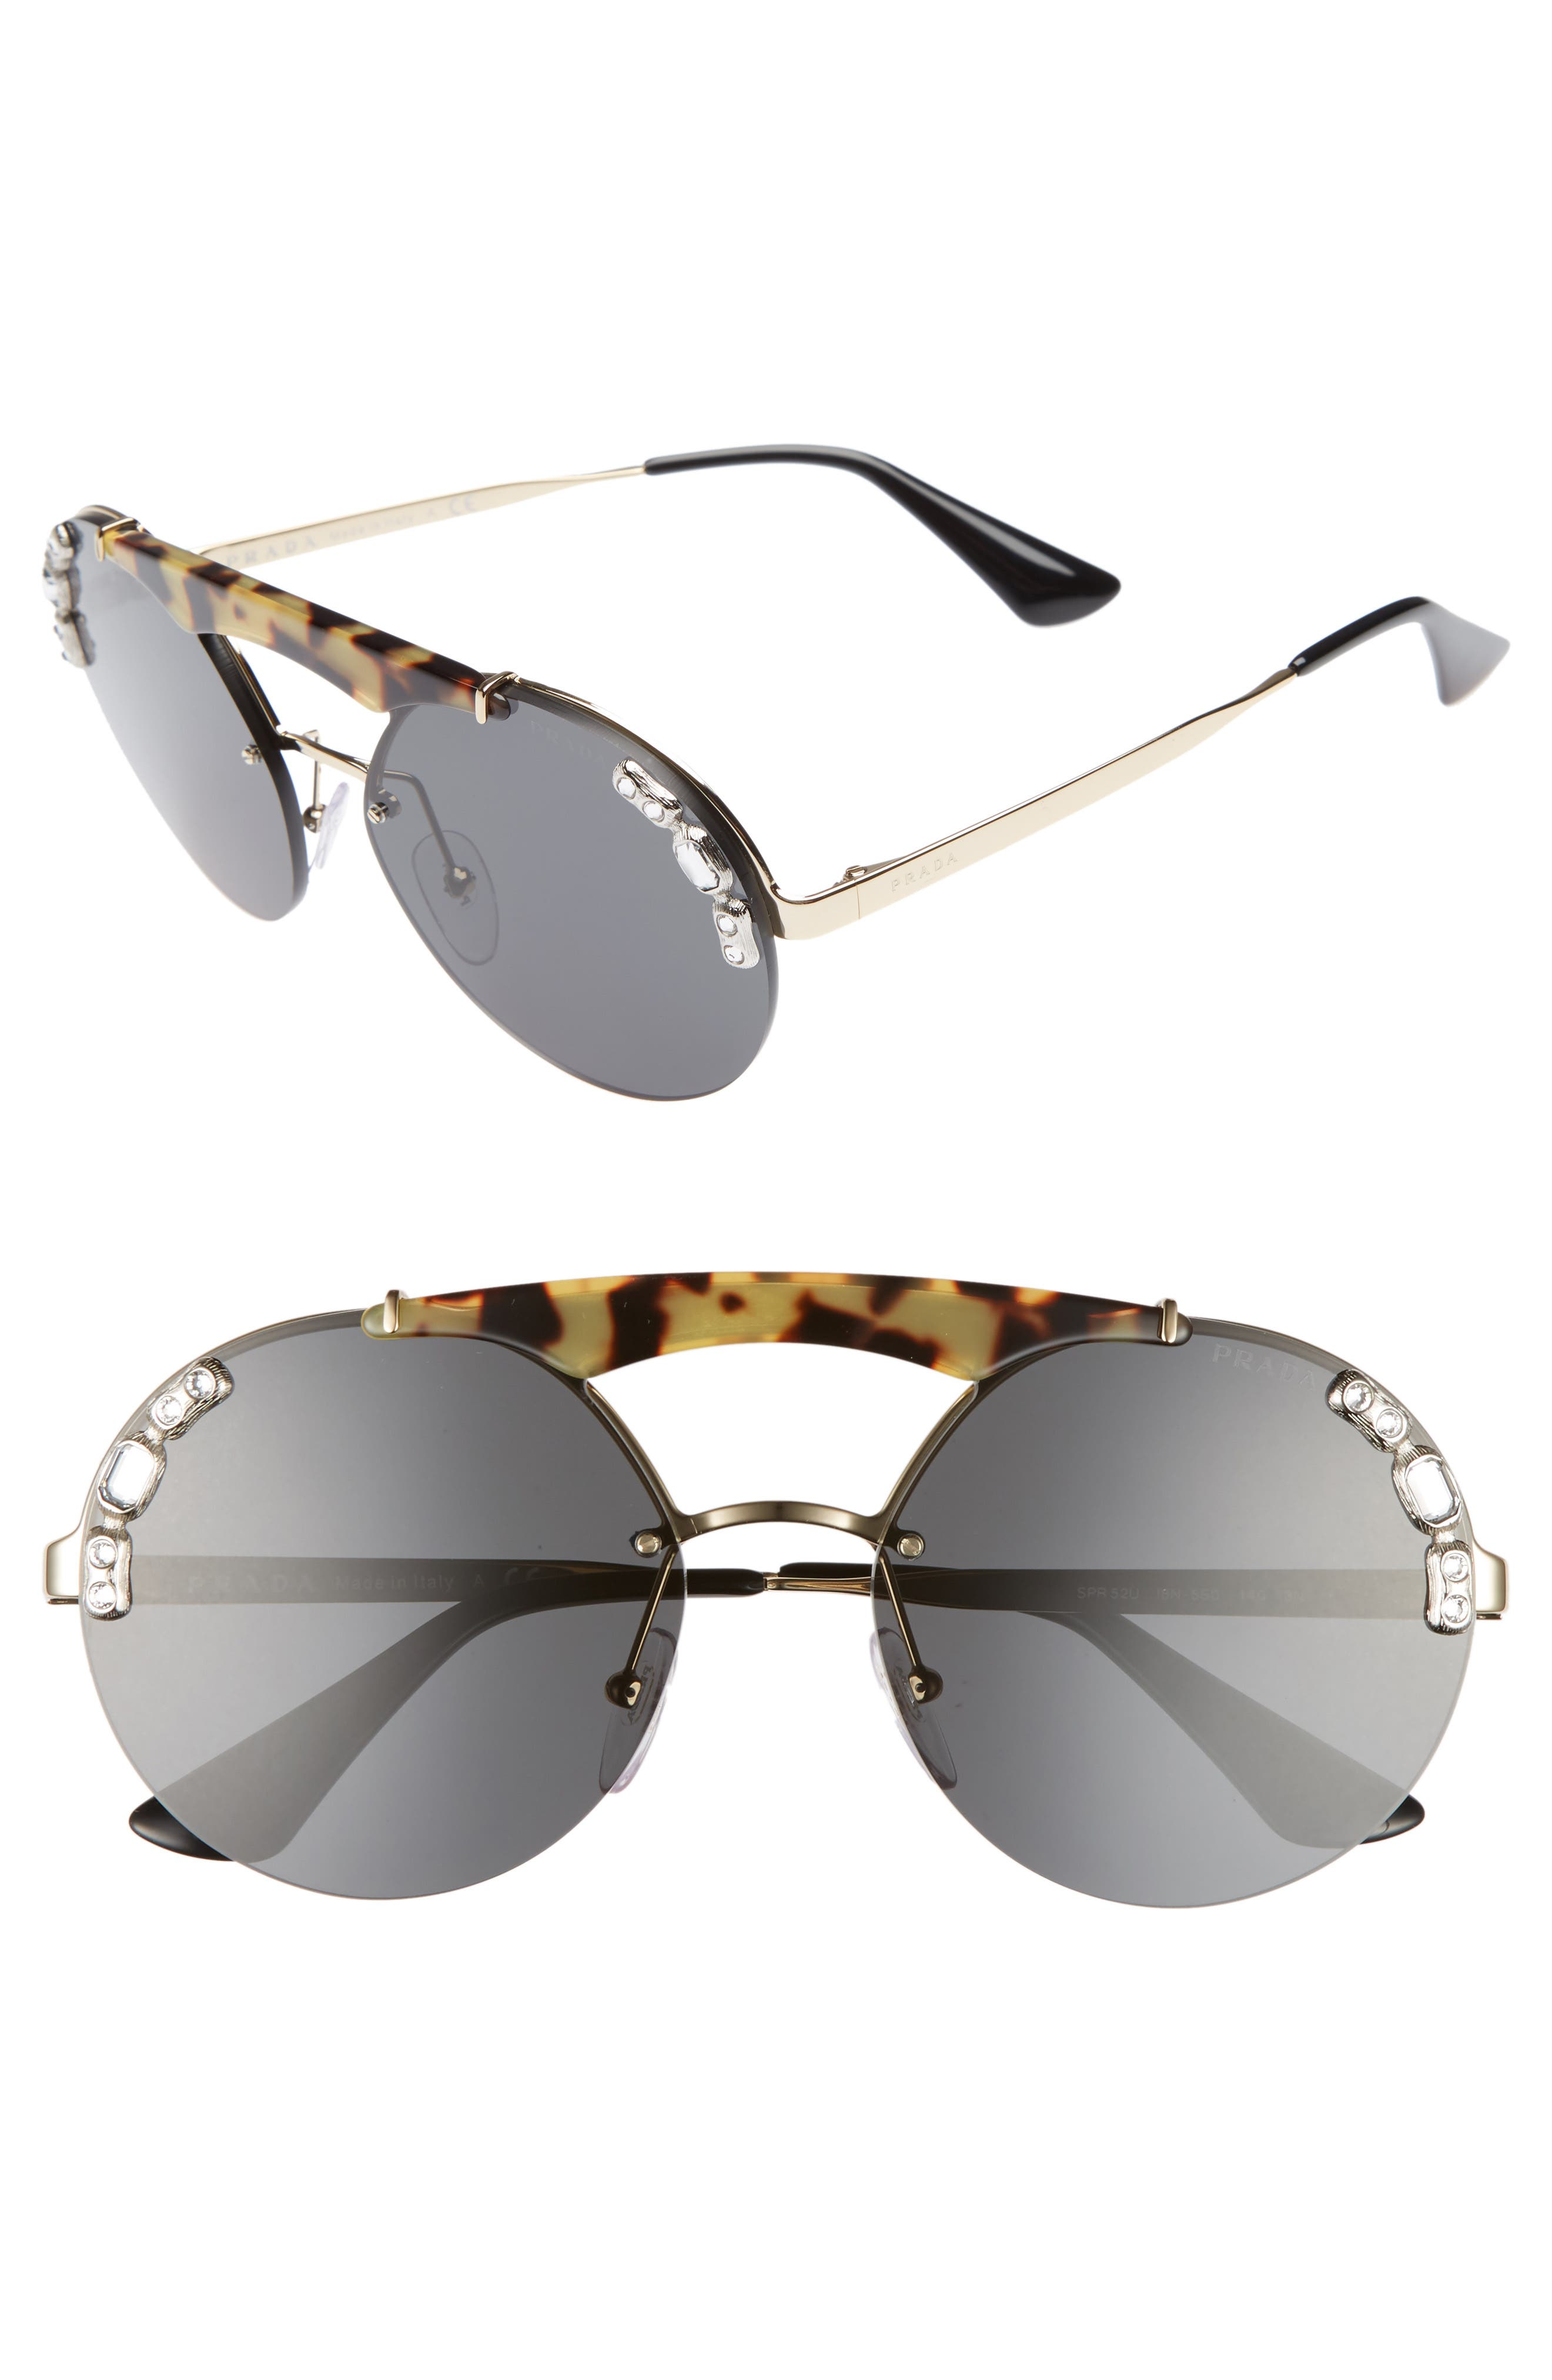 52mm Embellished Round Rimless Sunglasses,                         Main,                         color, Pale/ Gold